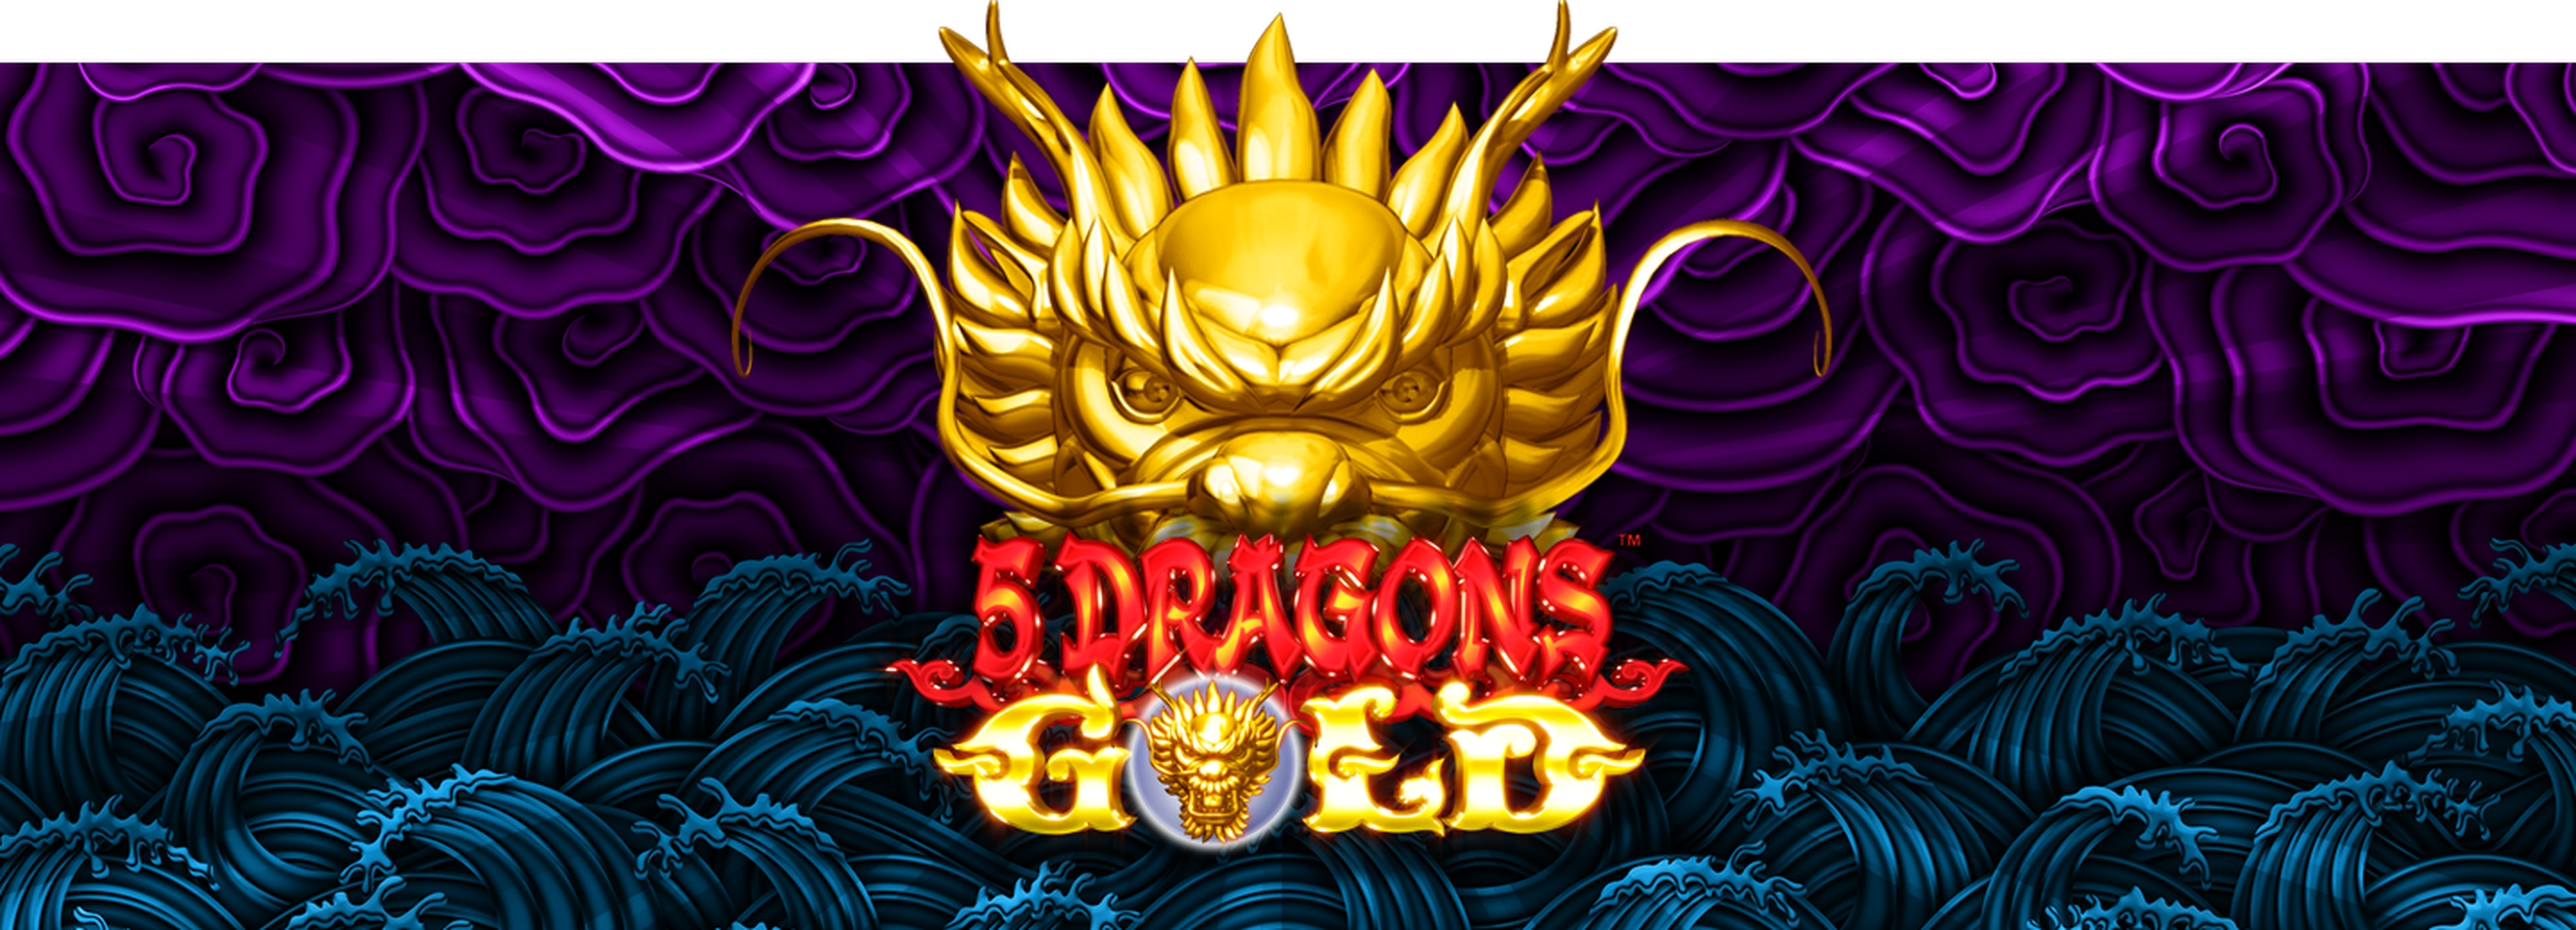 The 5 Dragons Gold Online Slot Demo Game by Aristocrat